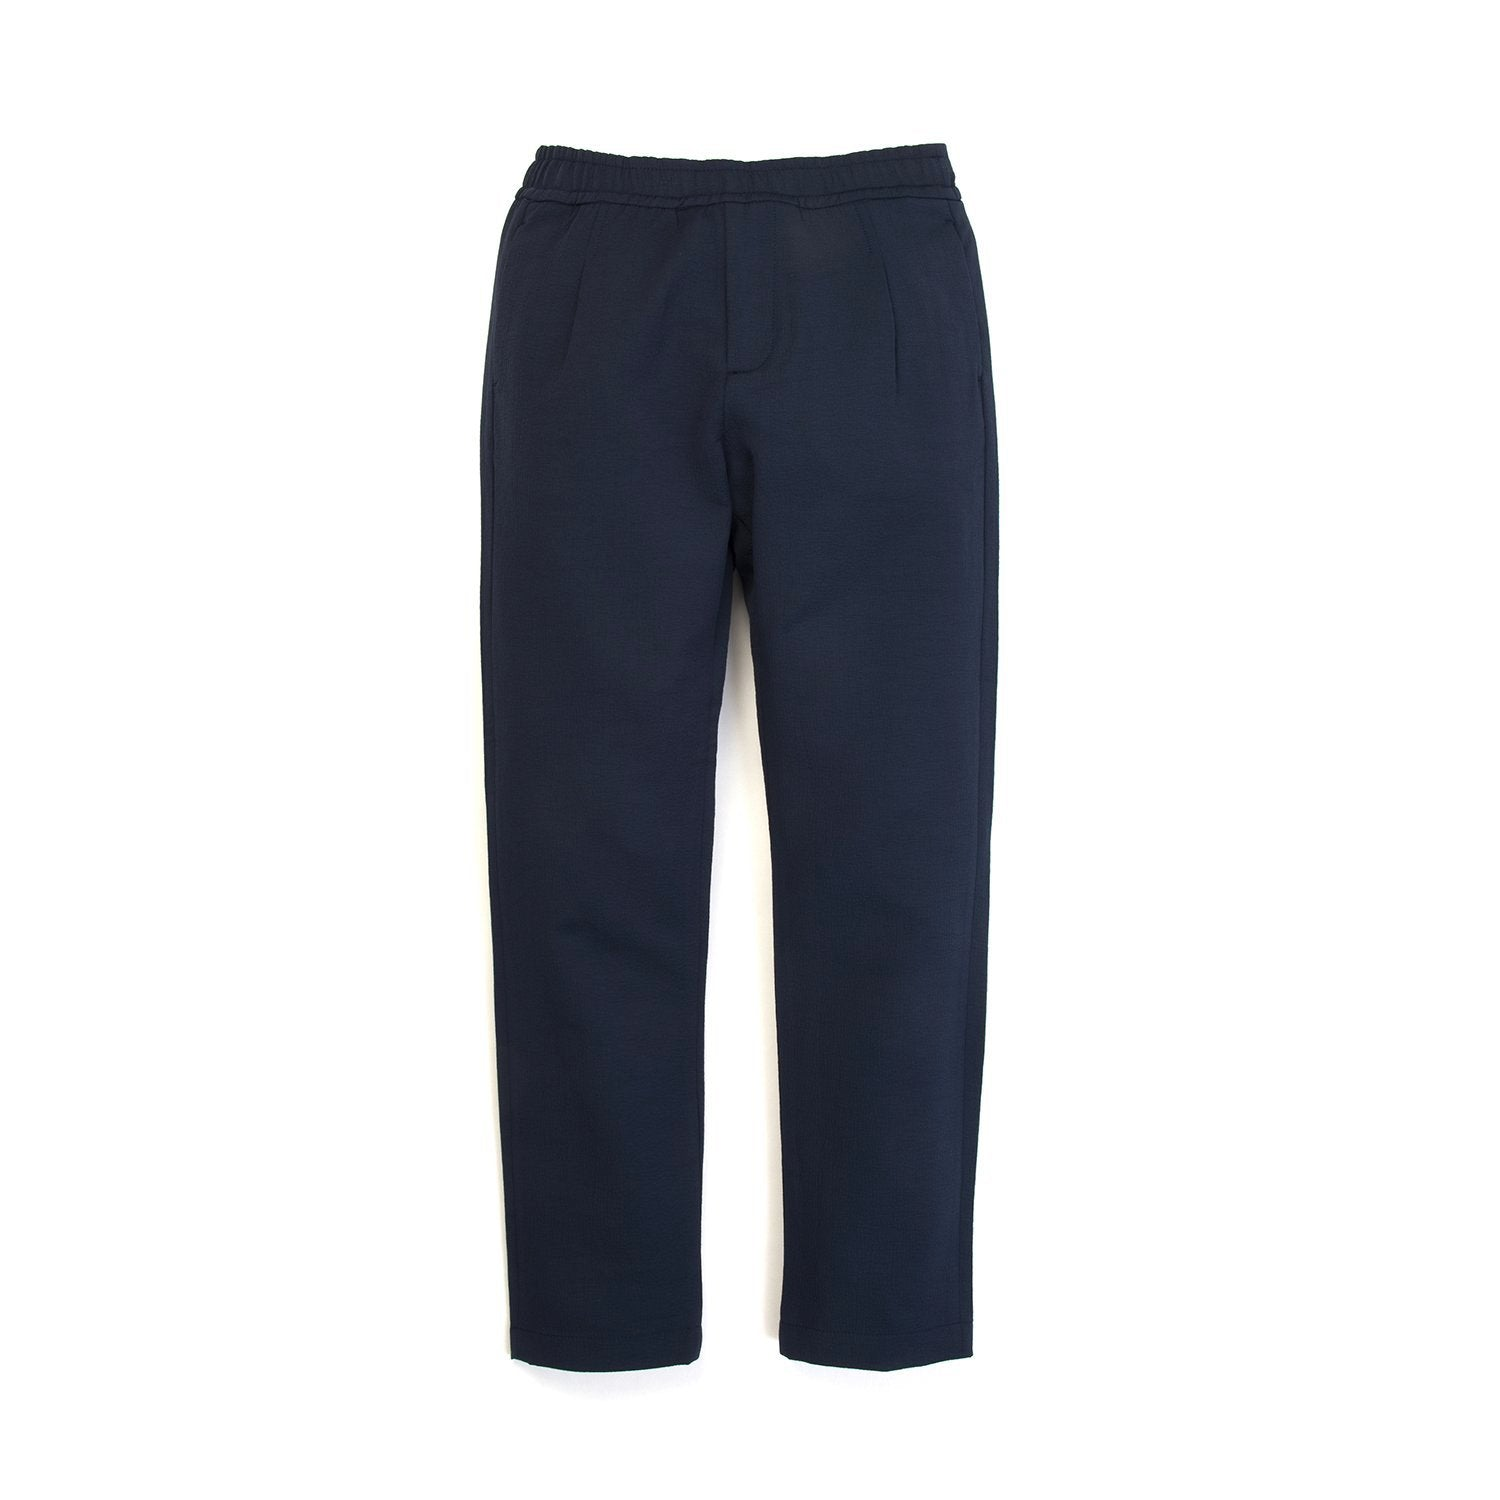 Soulland NOS Pino Drawstring Pants Navy